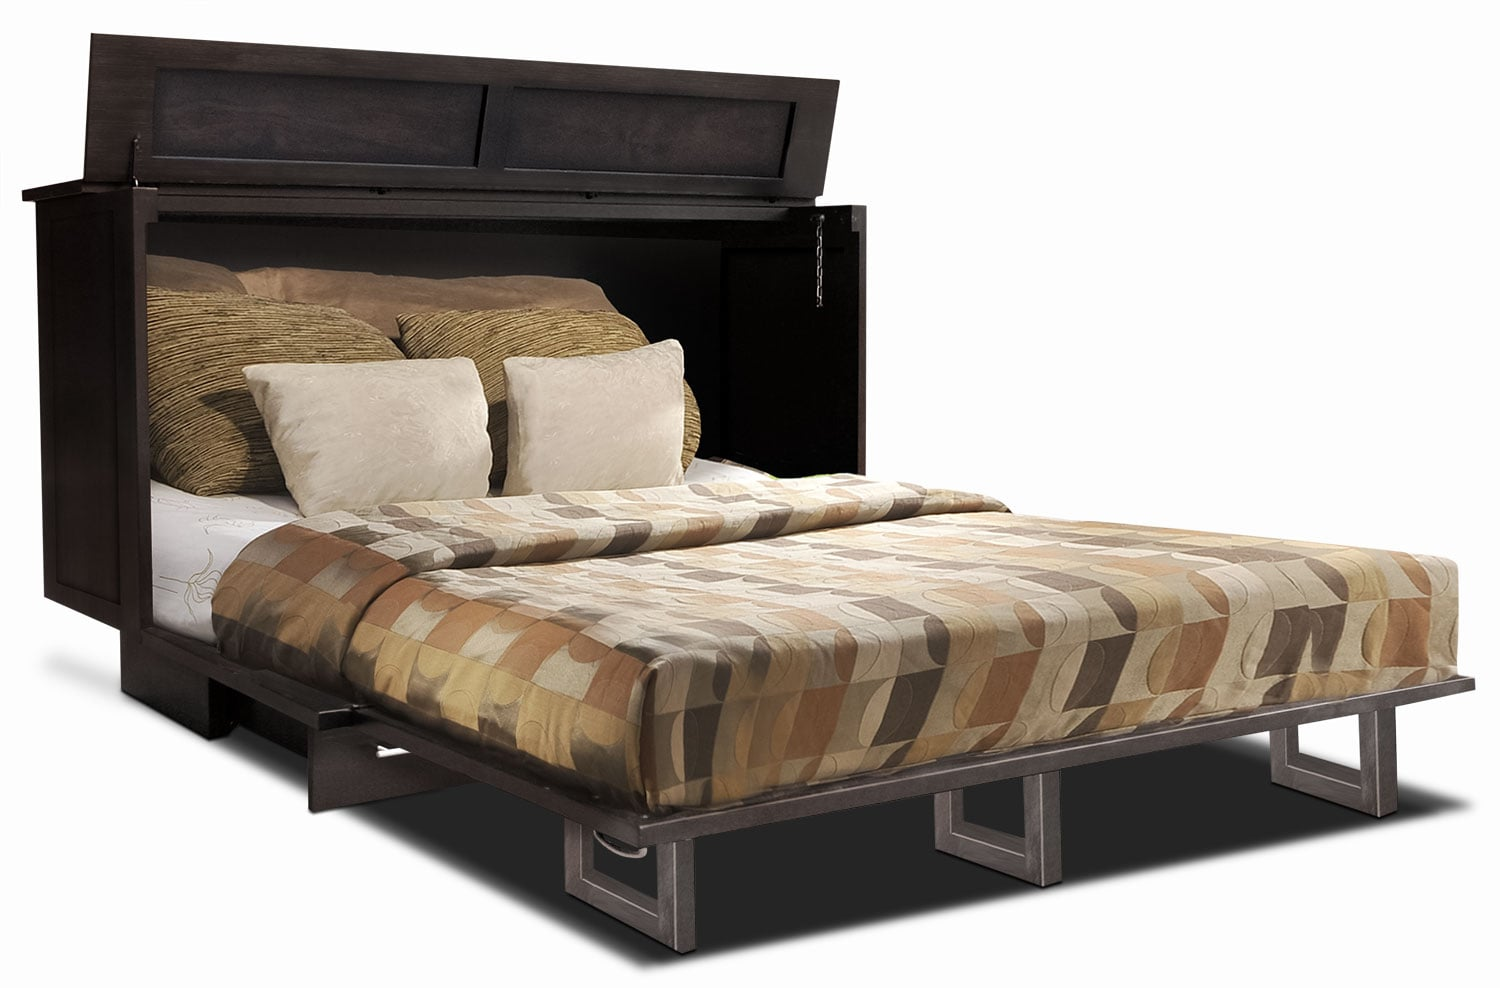 Bedroom Furniture - Manhattan Queen-Size Sleep Chest™